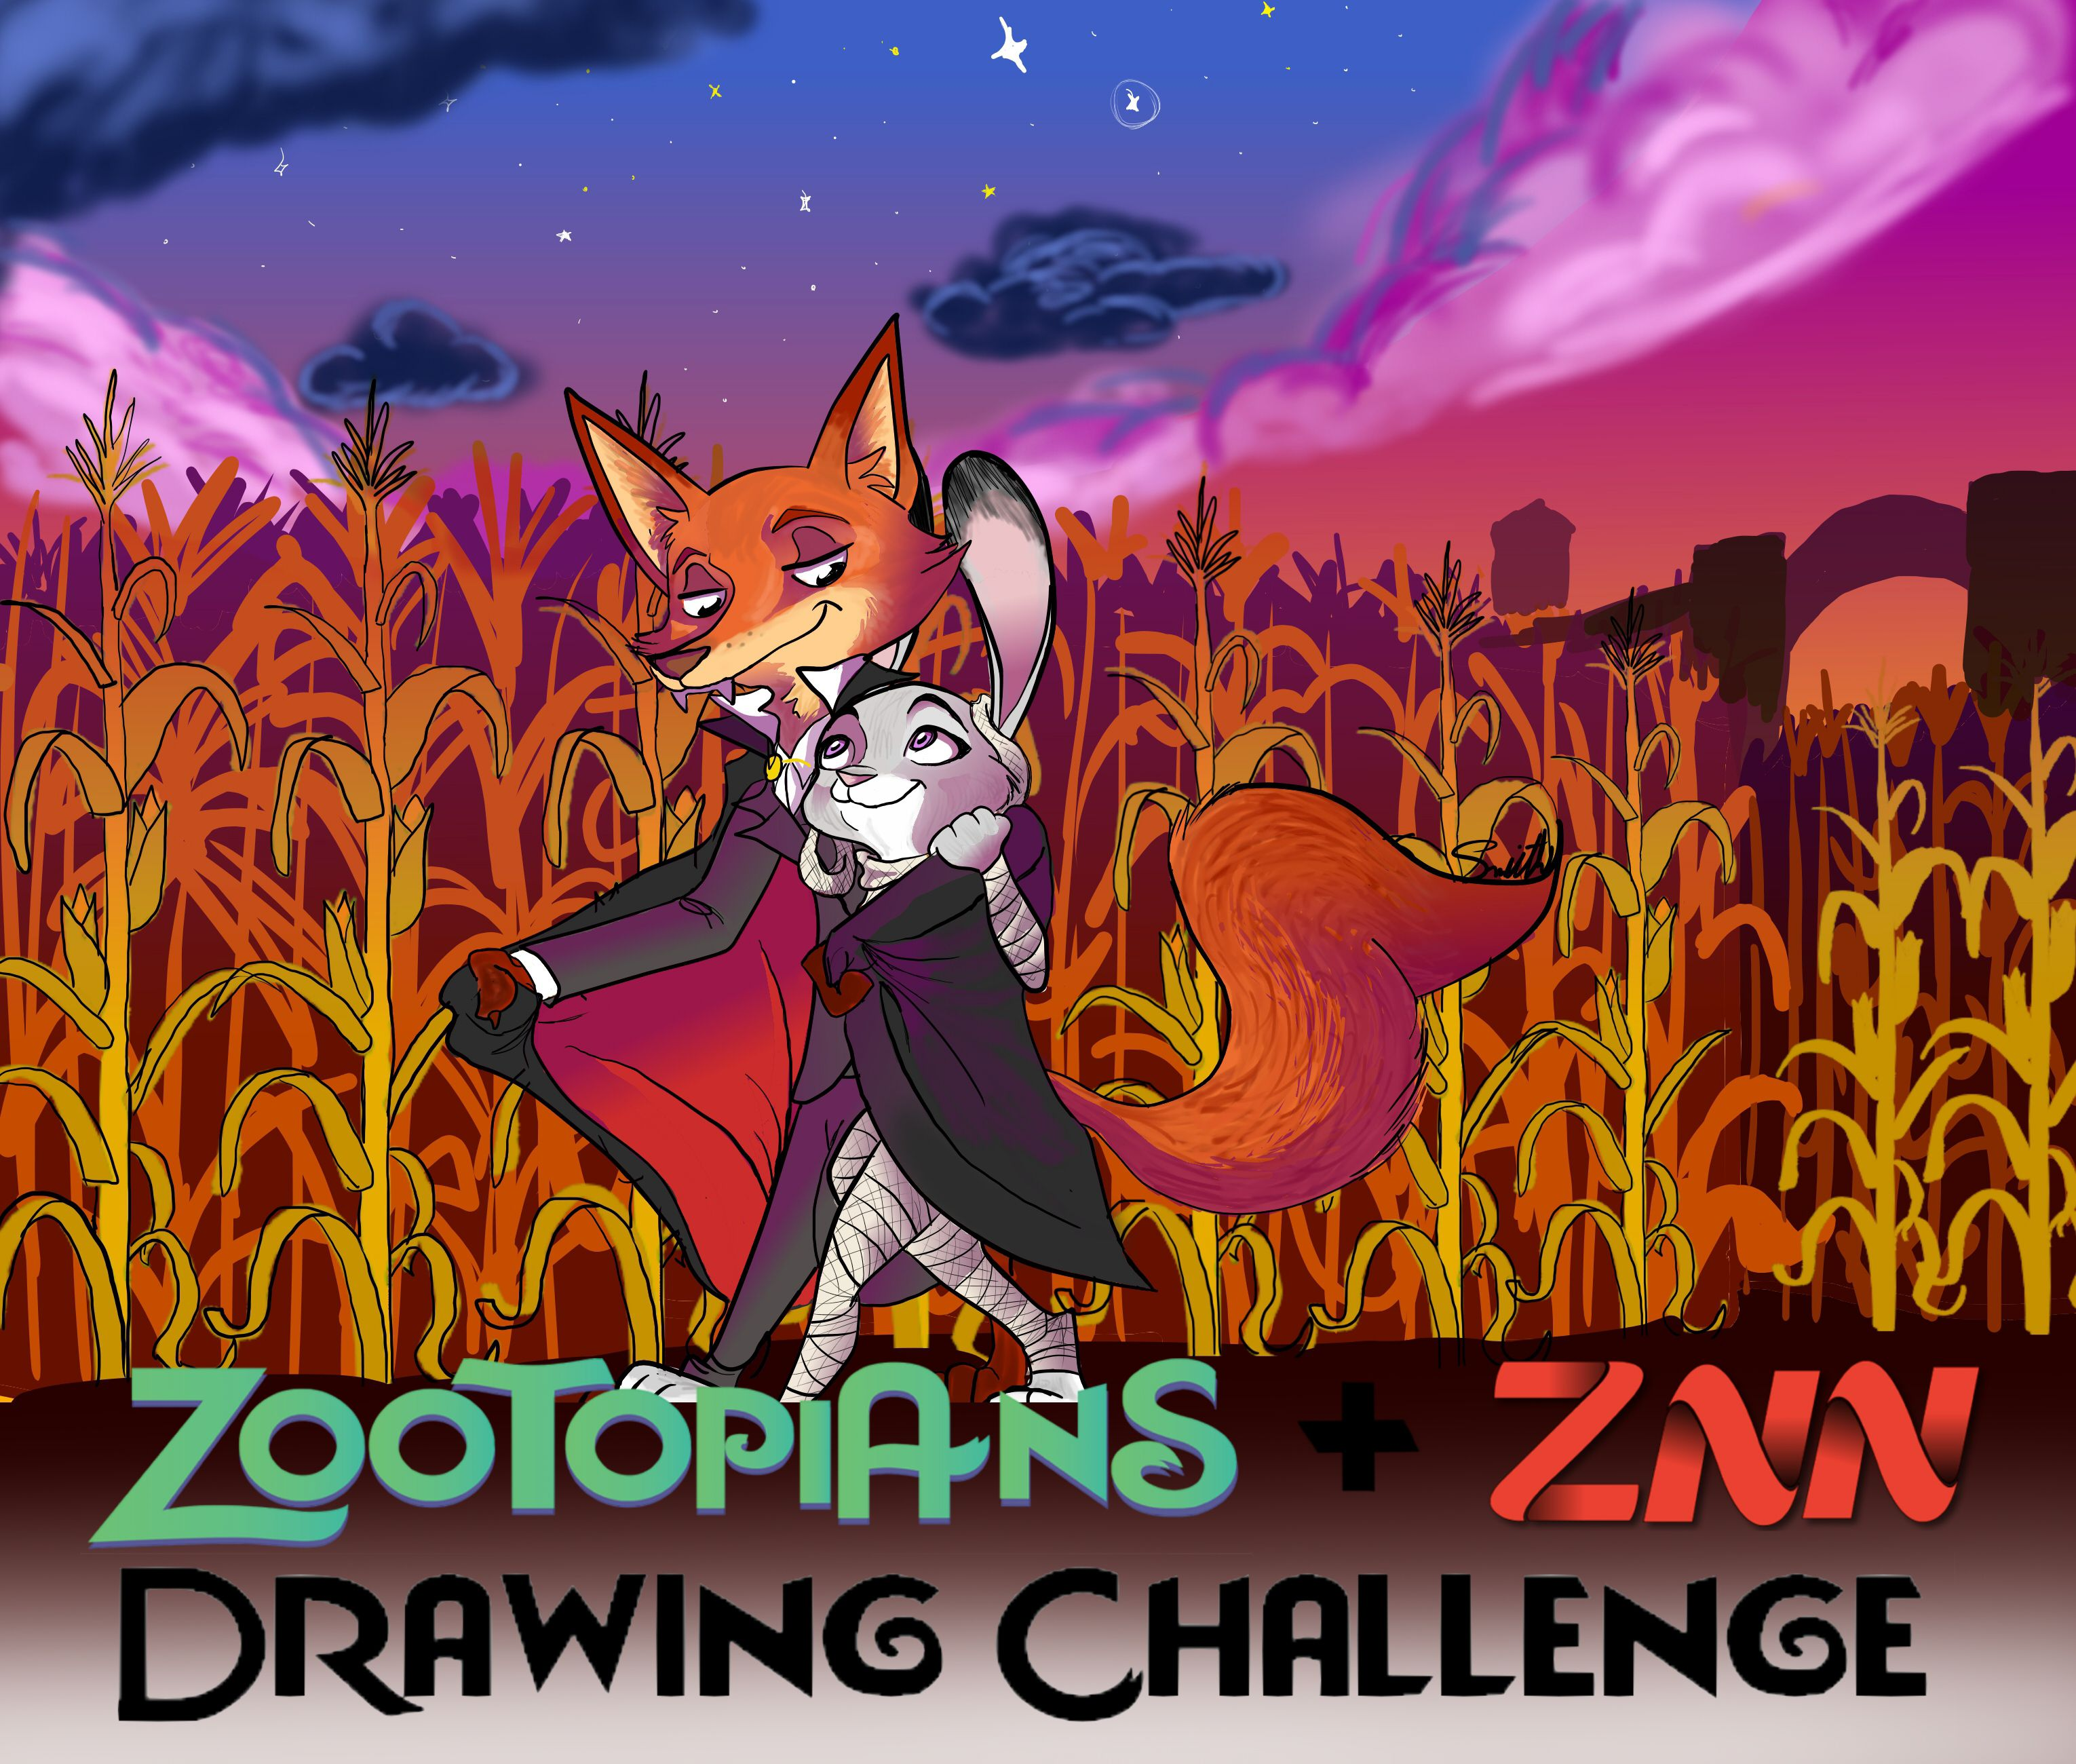 Znn And Zootopians Present The Halloween Drawing Contest Zootopia